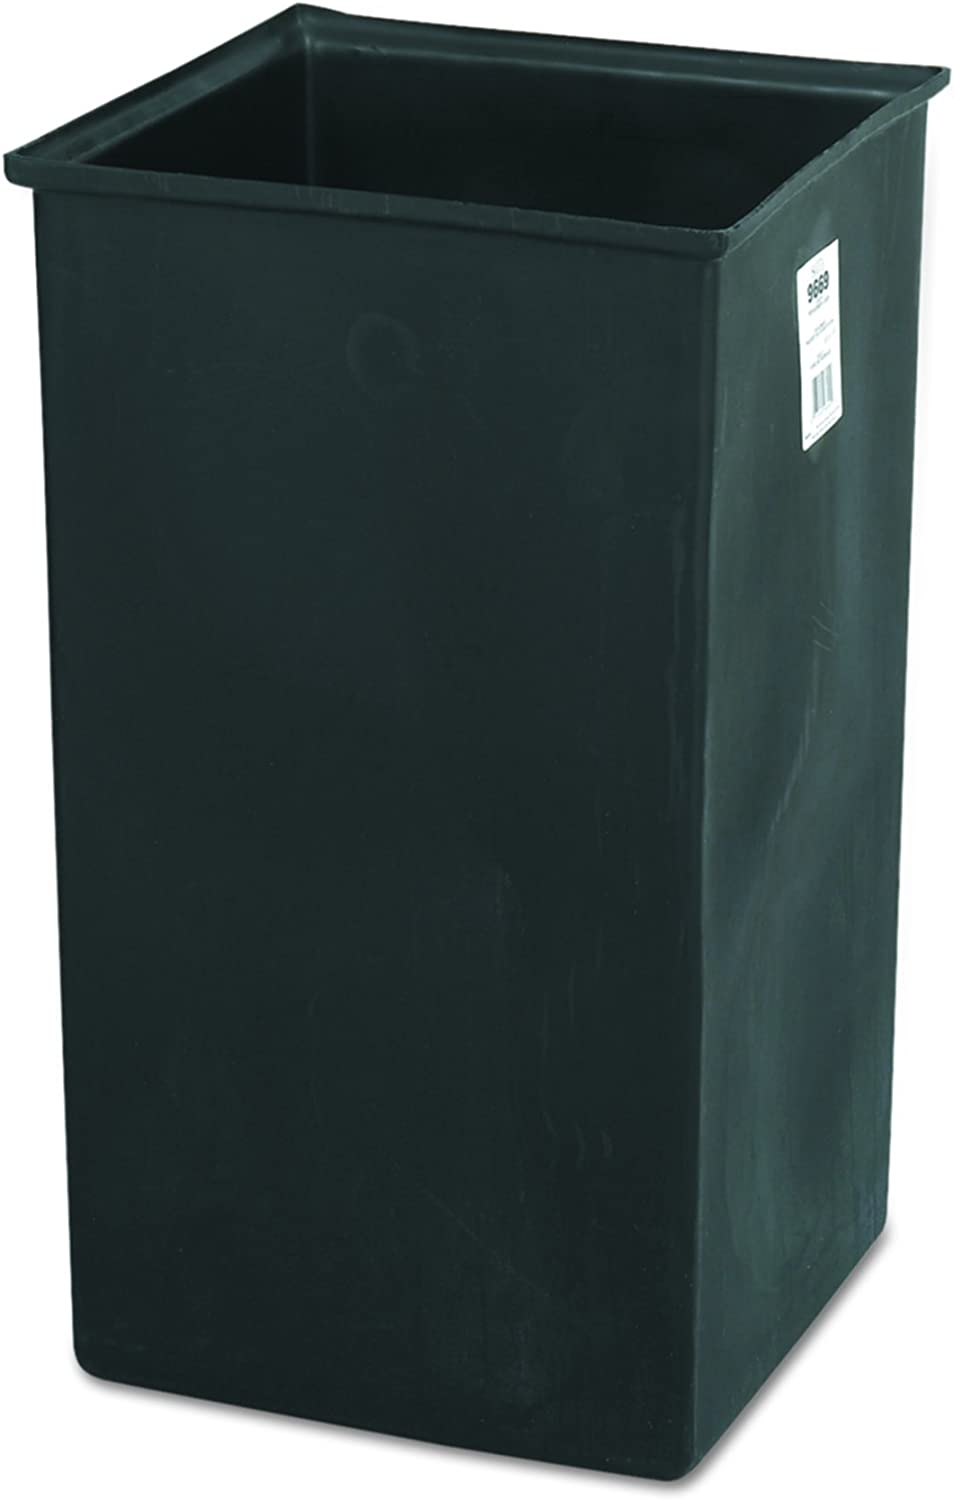 Safco Products 36 Gallon Plastic Liner 9669, for use with Safco Push Top Receptacle, 36-Gallon Capacity